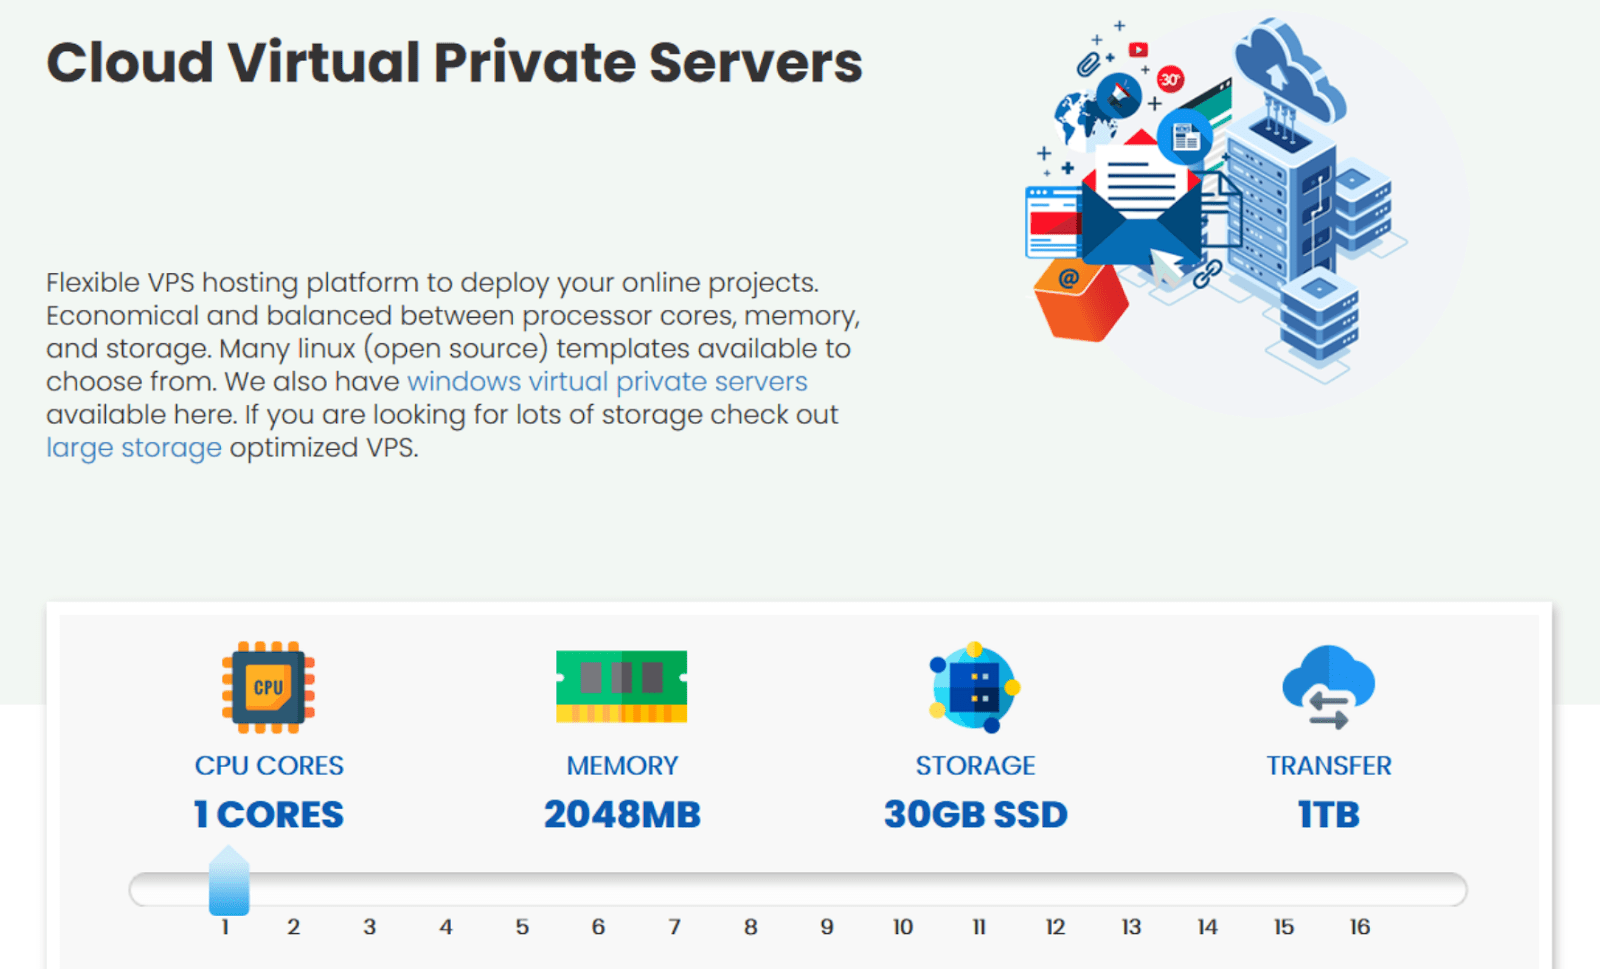 InterServer - VPS hosting by the slice